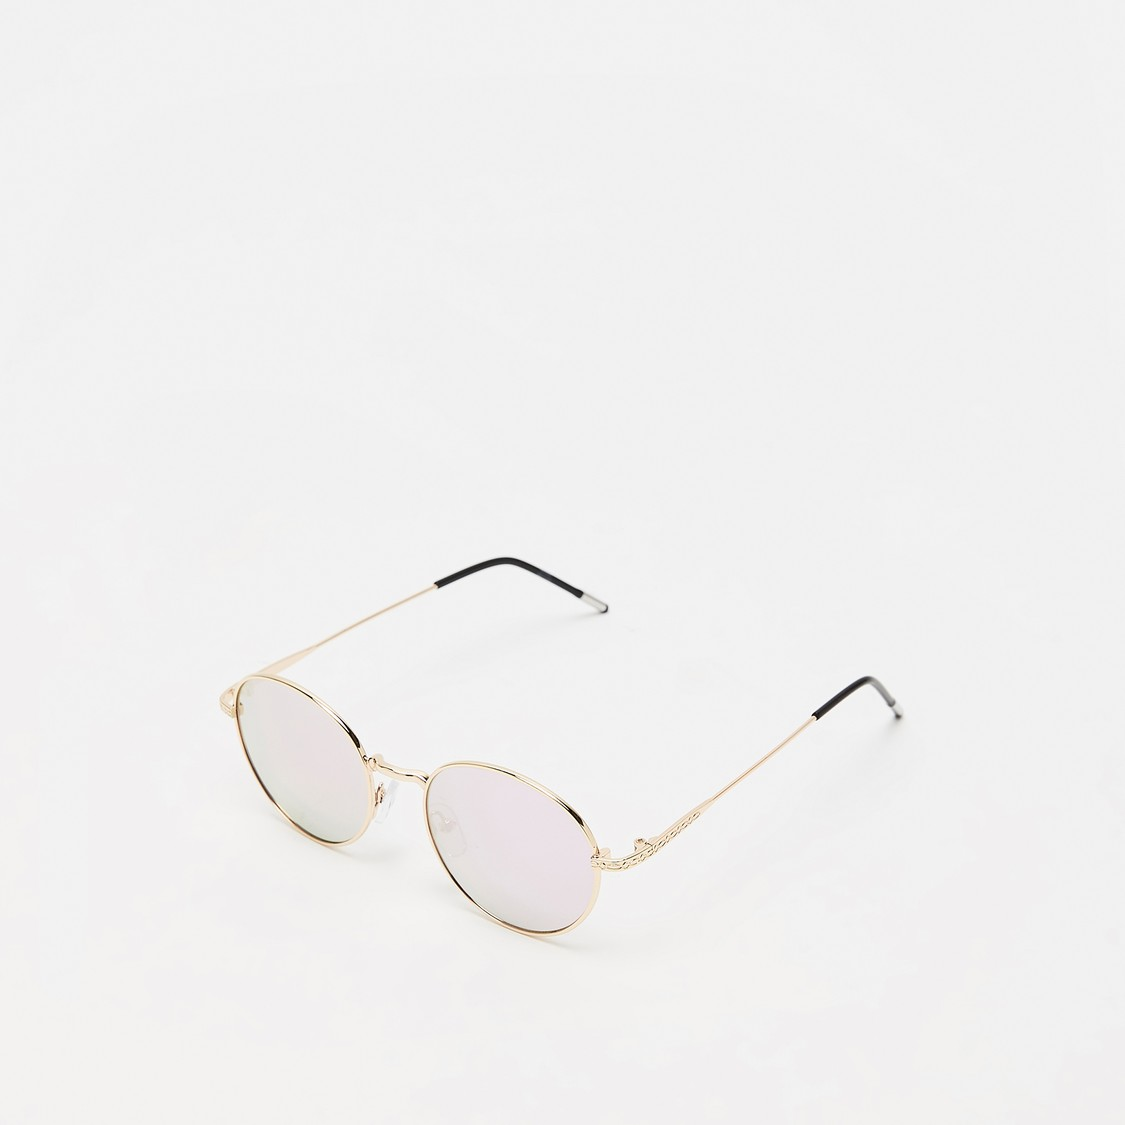 Full Rim Solid Round Sunglasses with Nose Pads